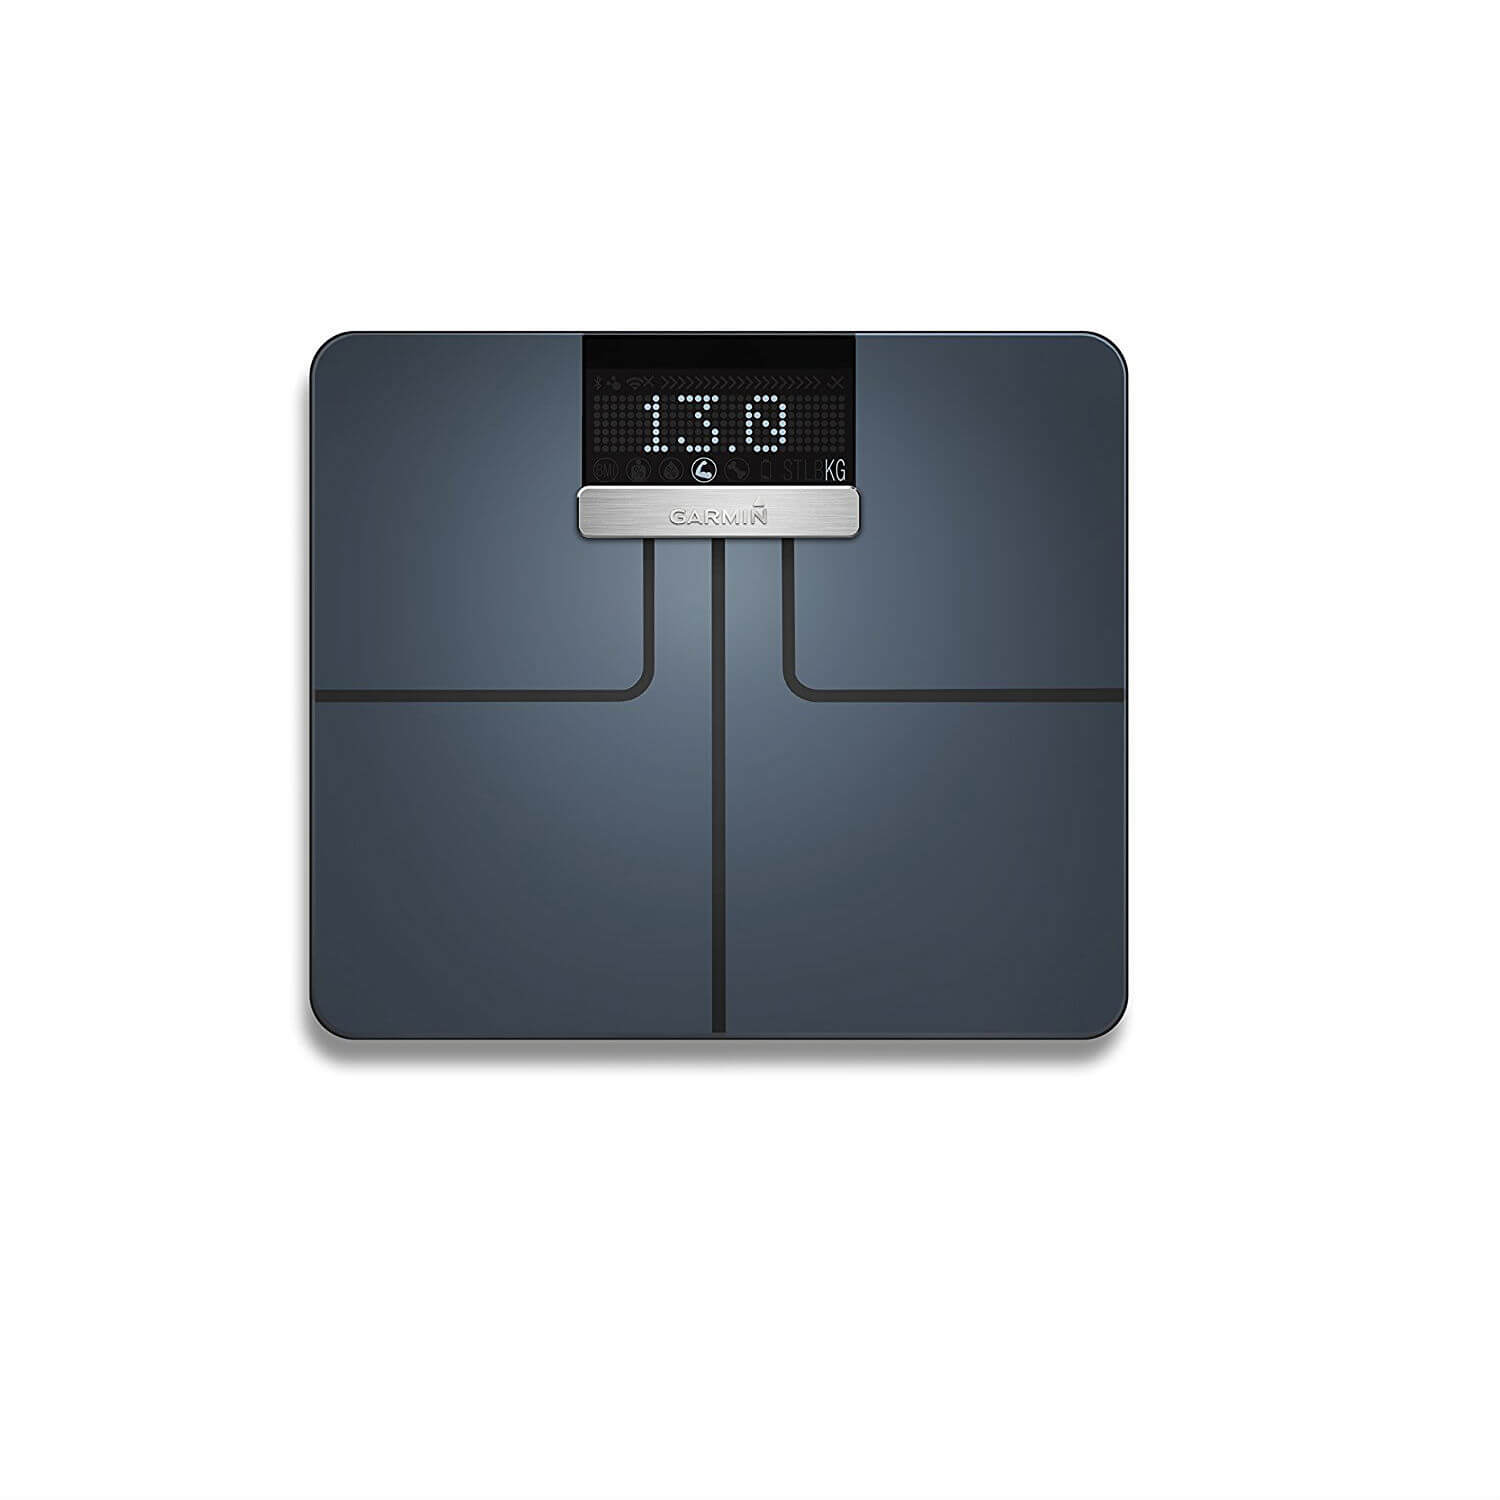 Garmin Index Smart Scale - Smart Scale with Connected Features (black)